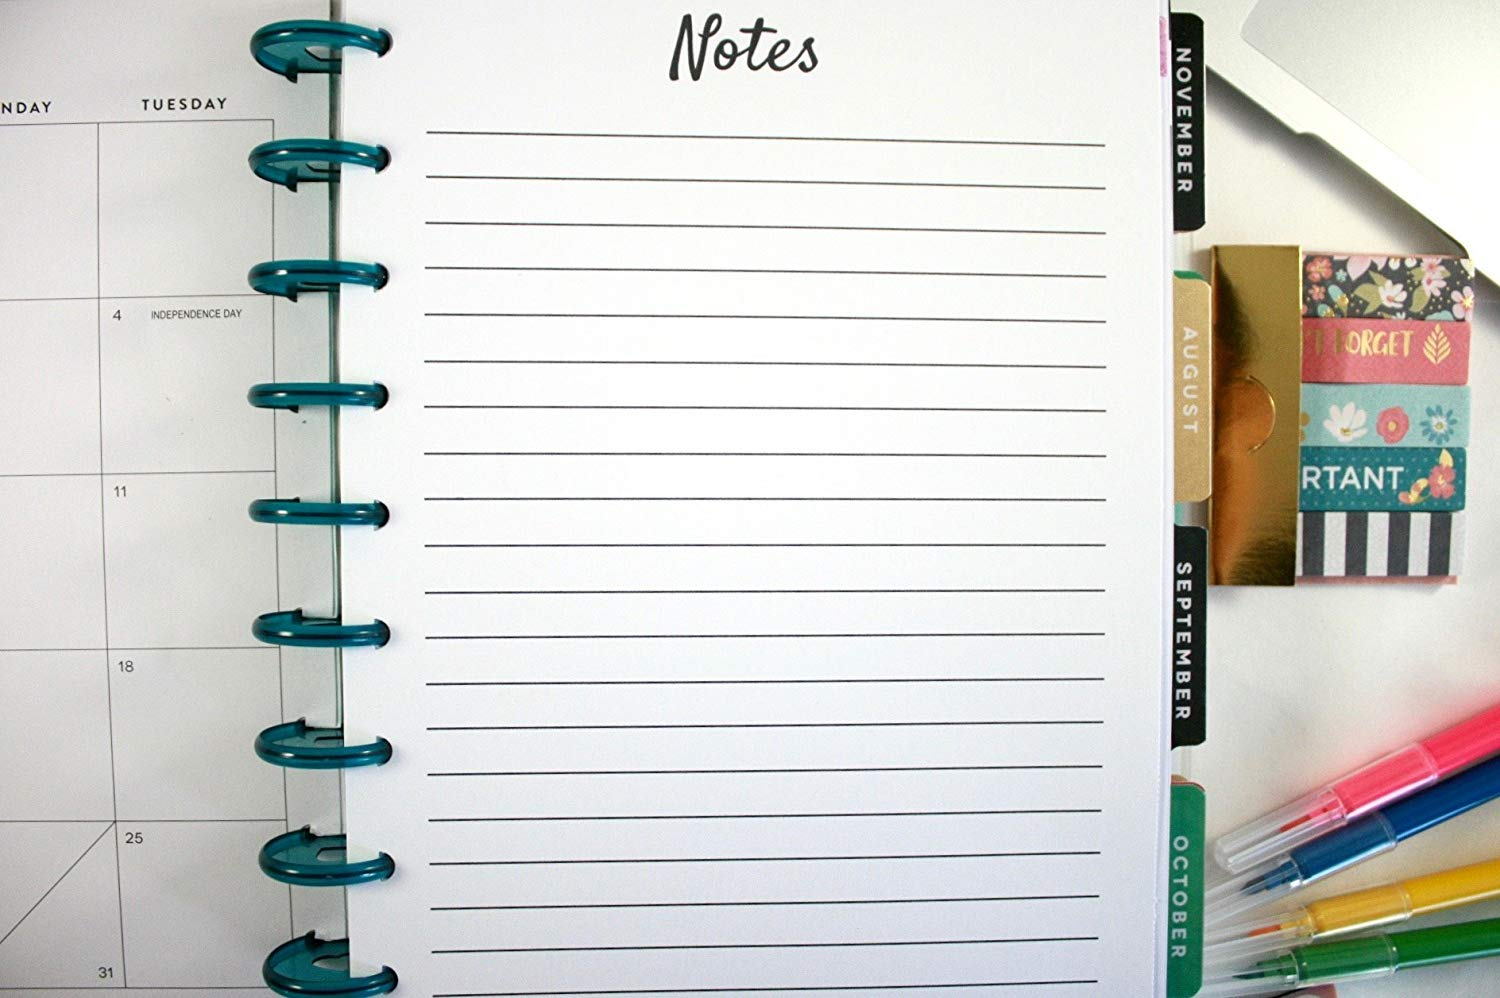 photograph about Cute Planner Refills named Affordable Adorable Planner Refills, obtain Lovable Planner Refills offers